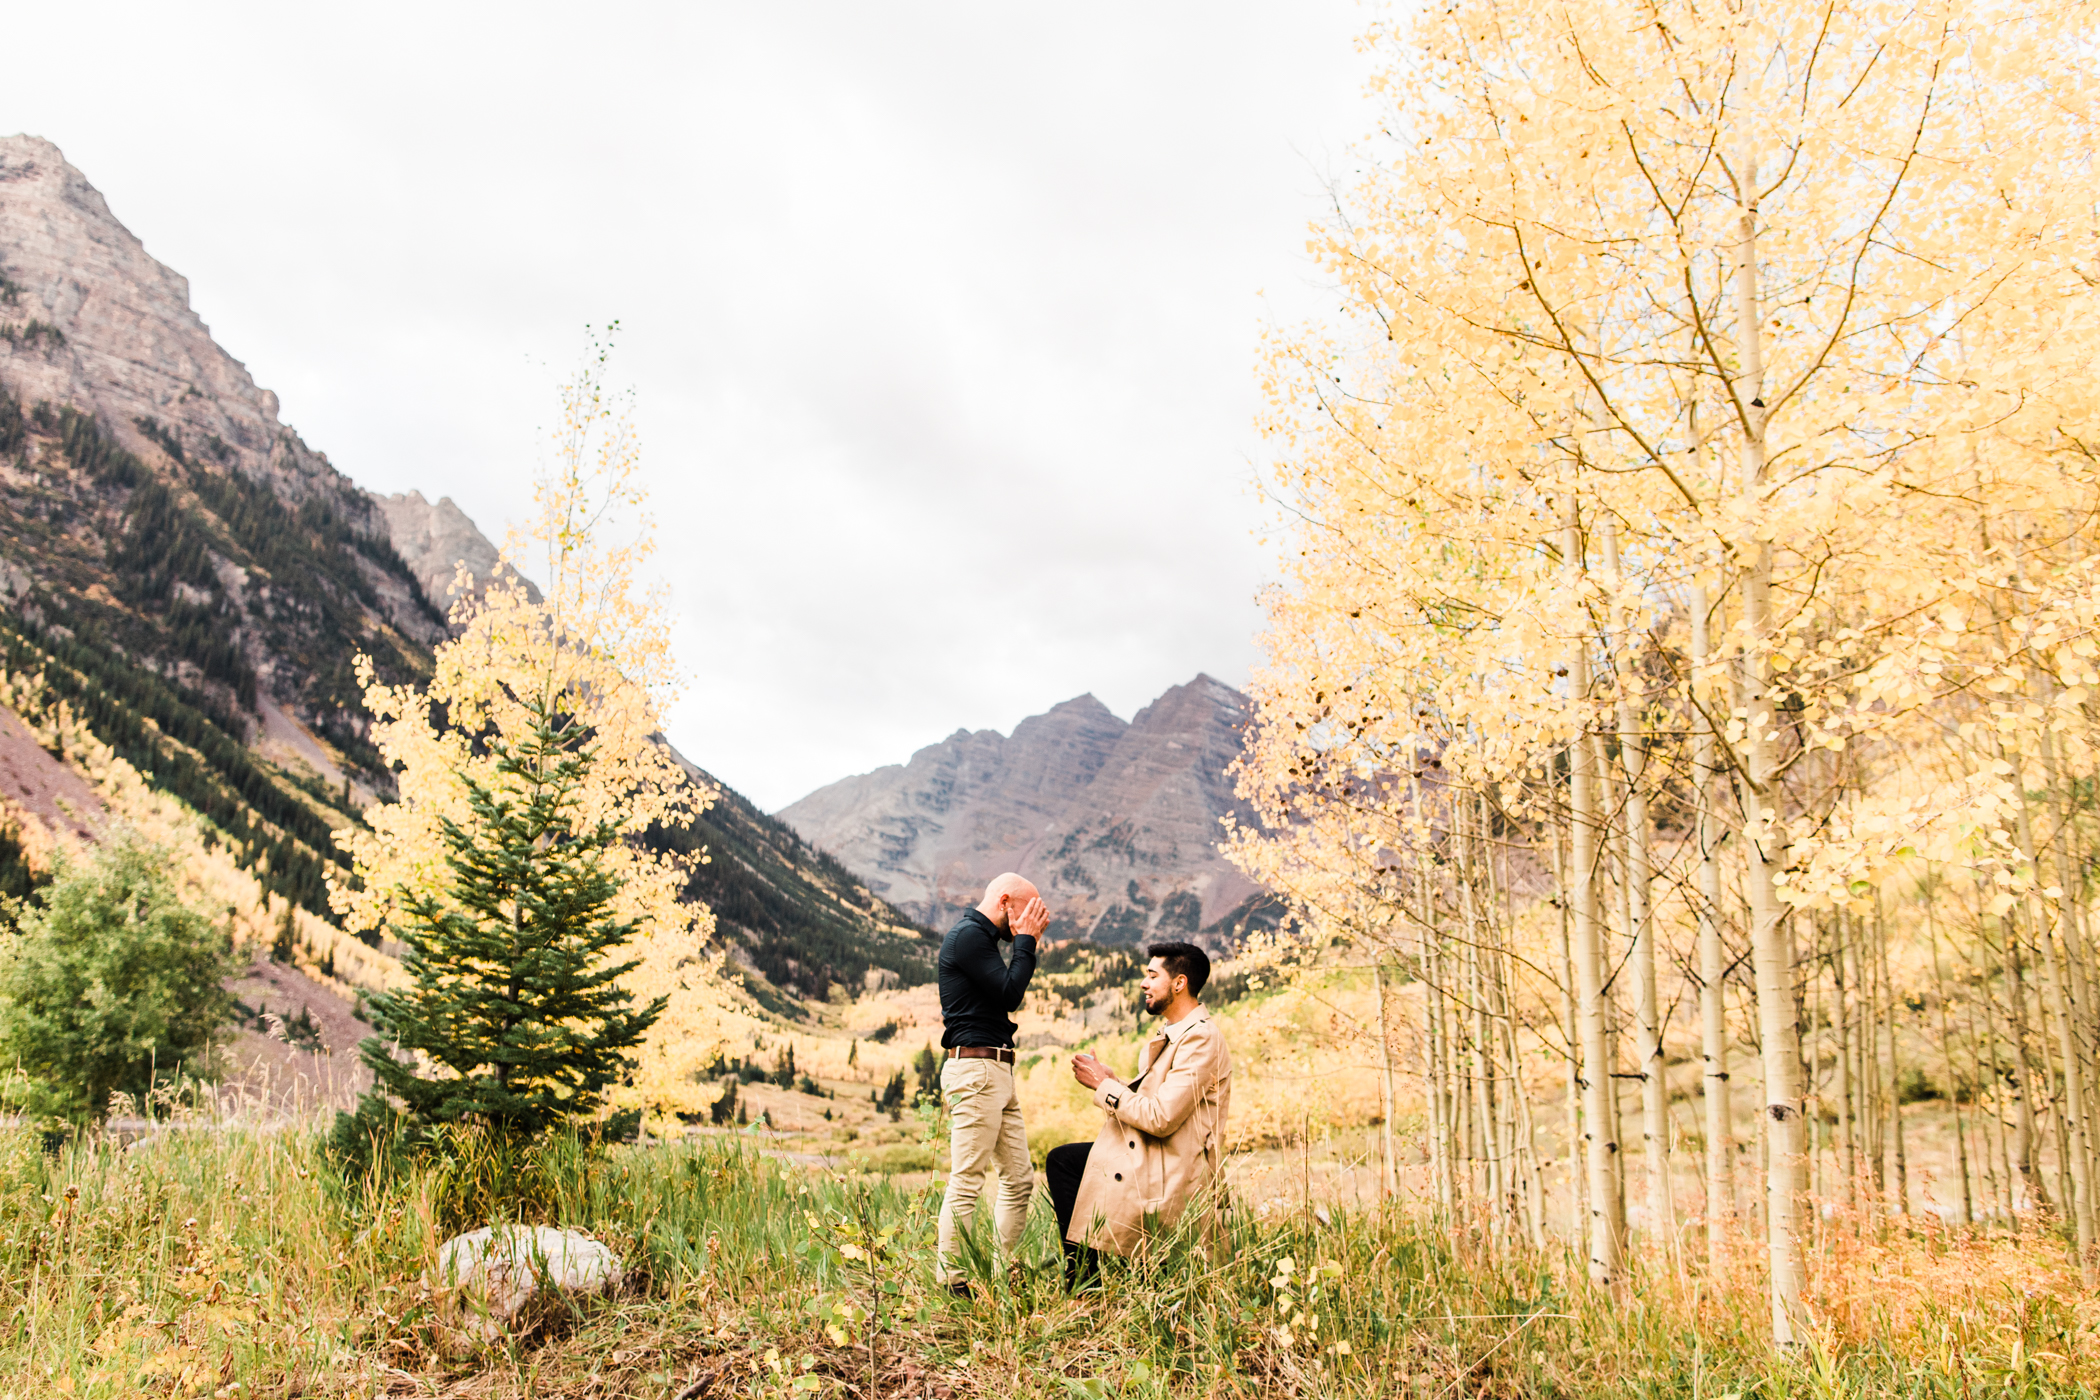 Maroon Bells Aspen, Colorado Rocky Mountain Fall Adventure Mountain Surprise Proposal Session | Maroon Bells engagement photographers